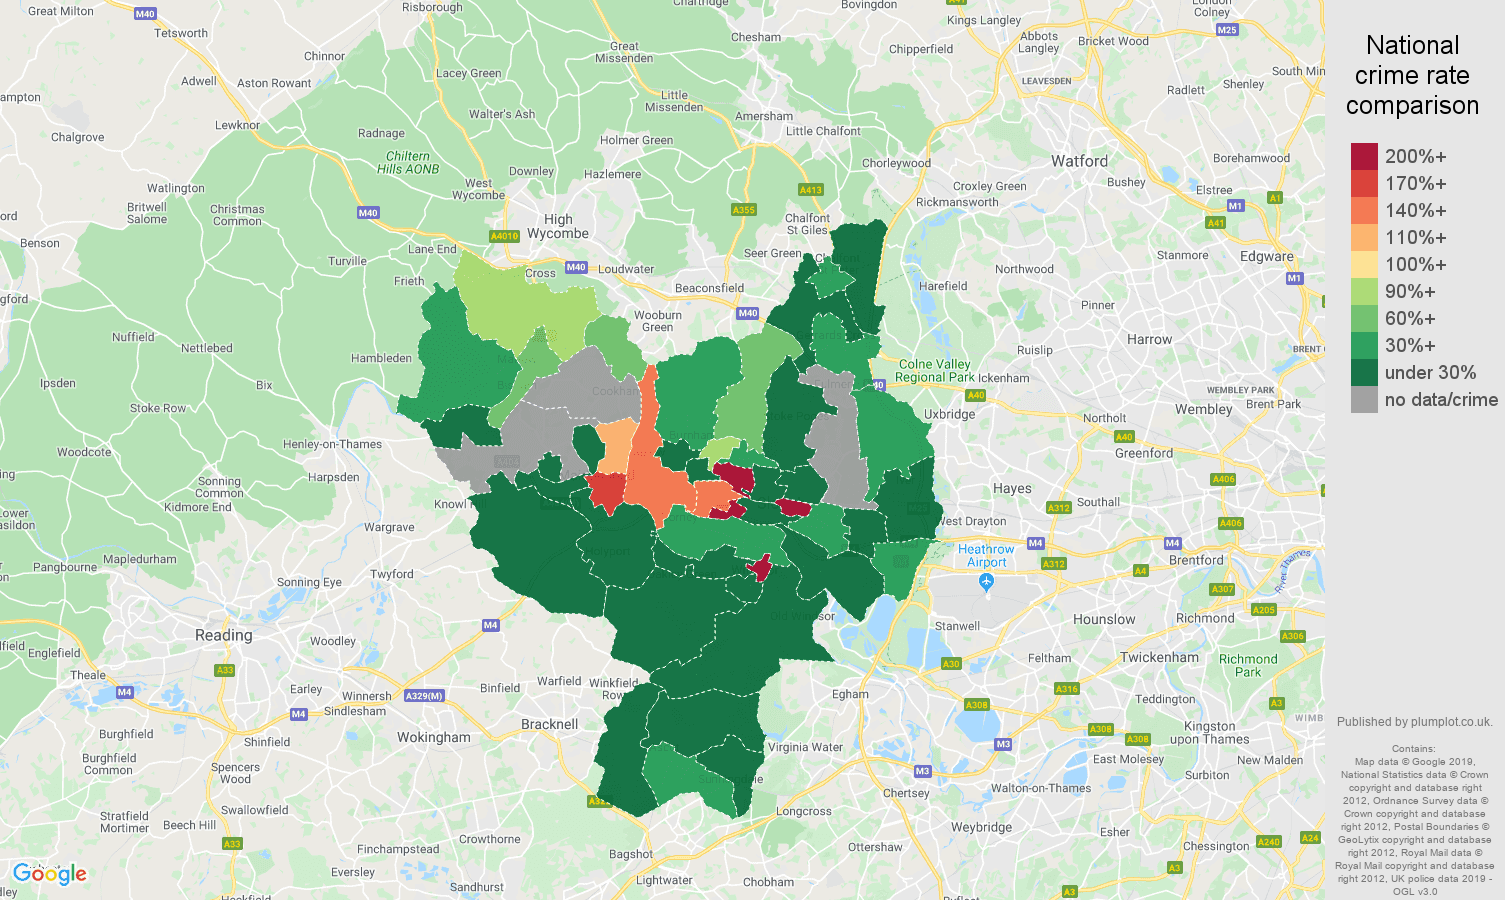 Slough shoplifting crime rate comparison map